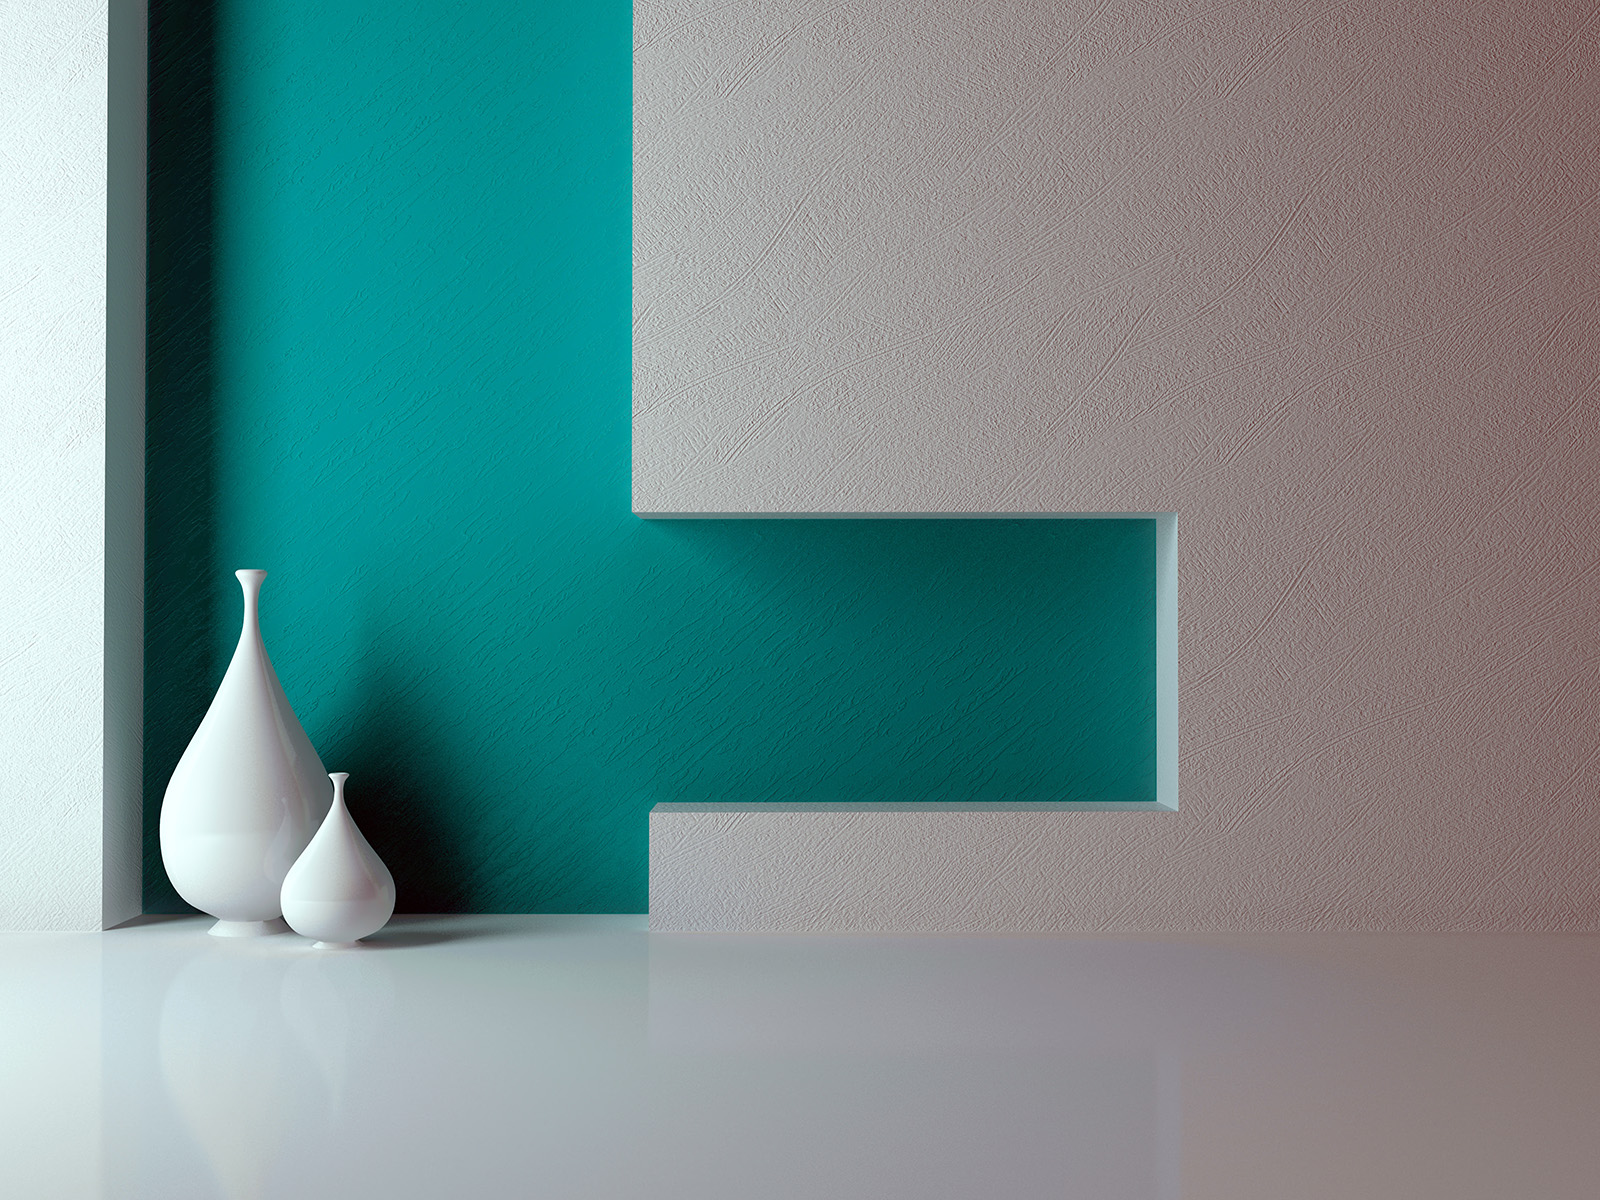 Interior walls and stood in the vase 50933